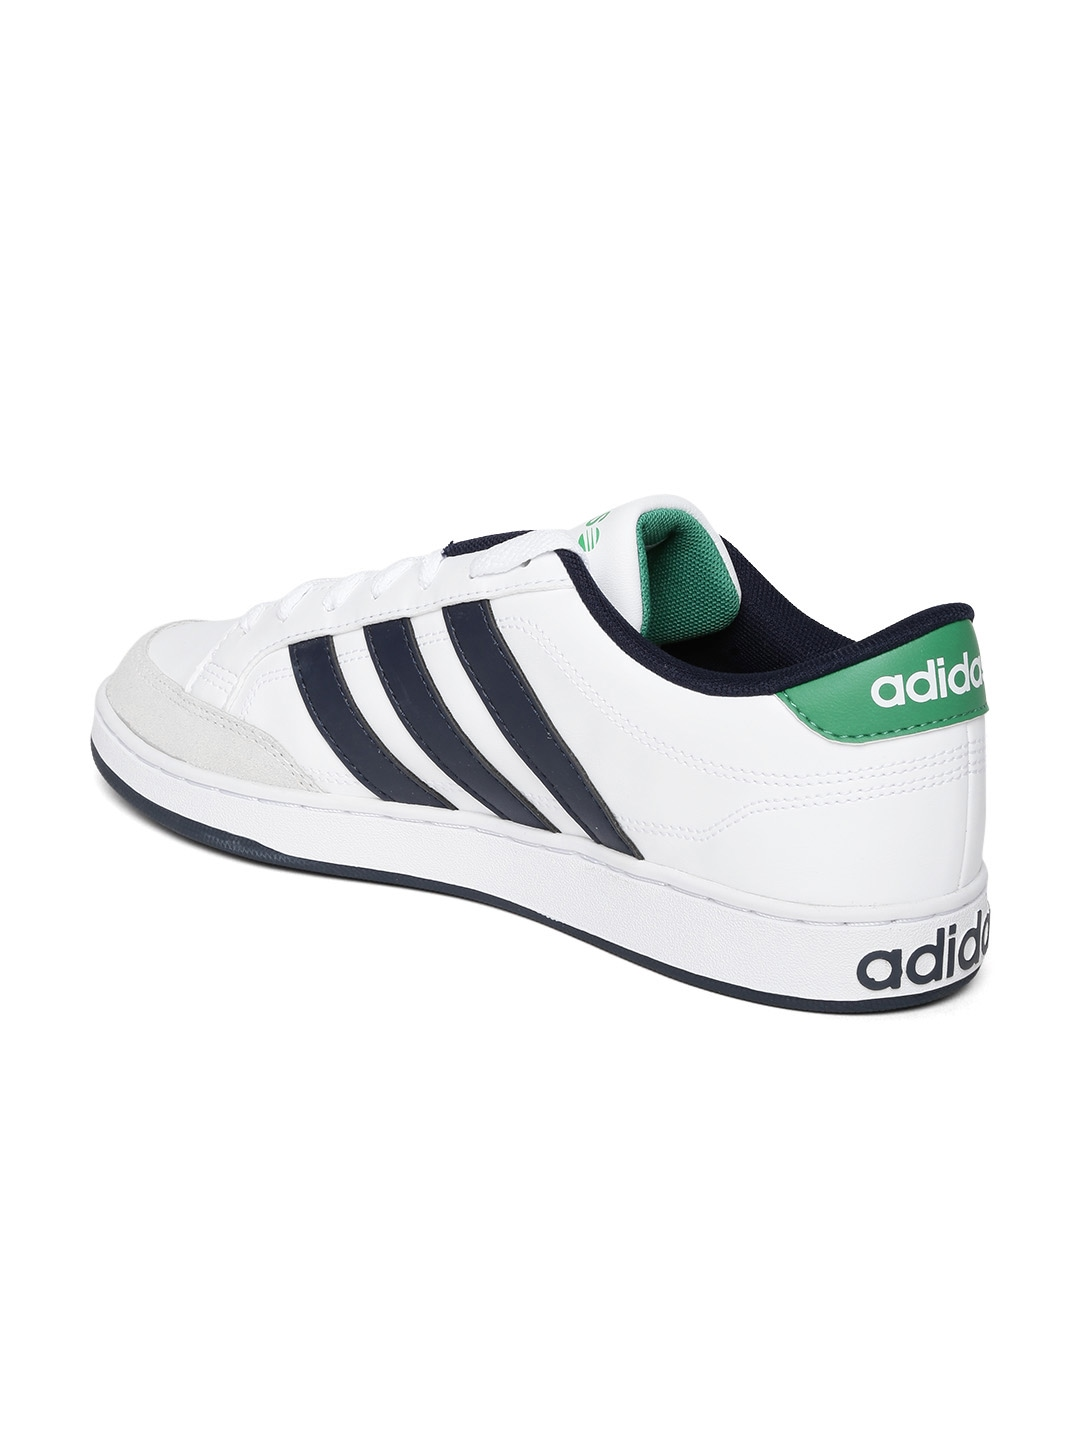 myntra adidas neo white leather casual shoes 655752